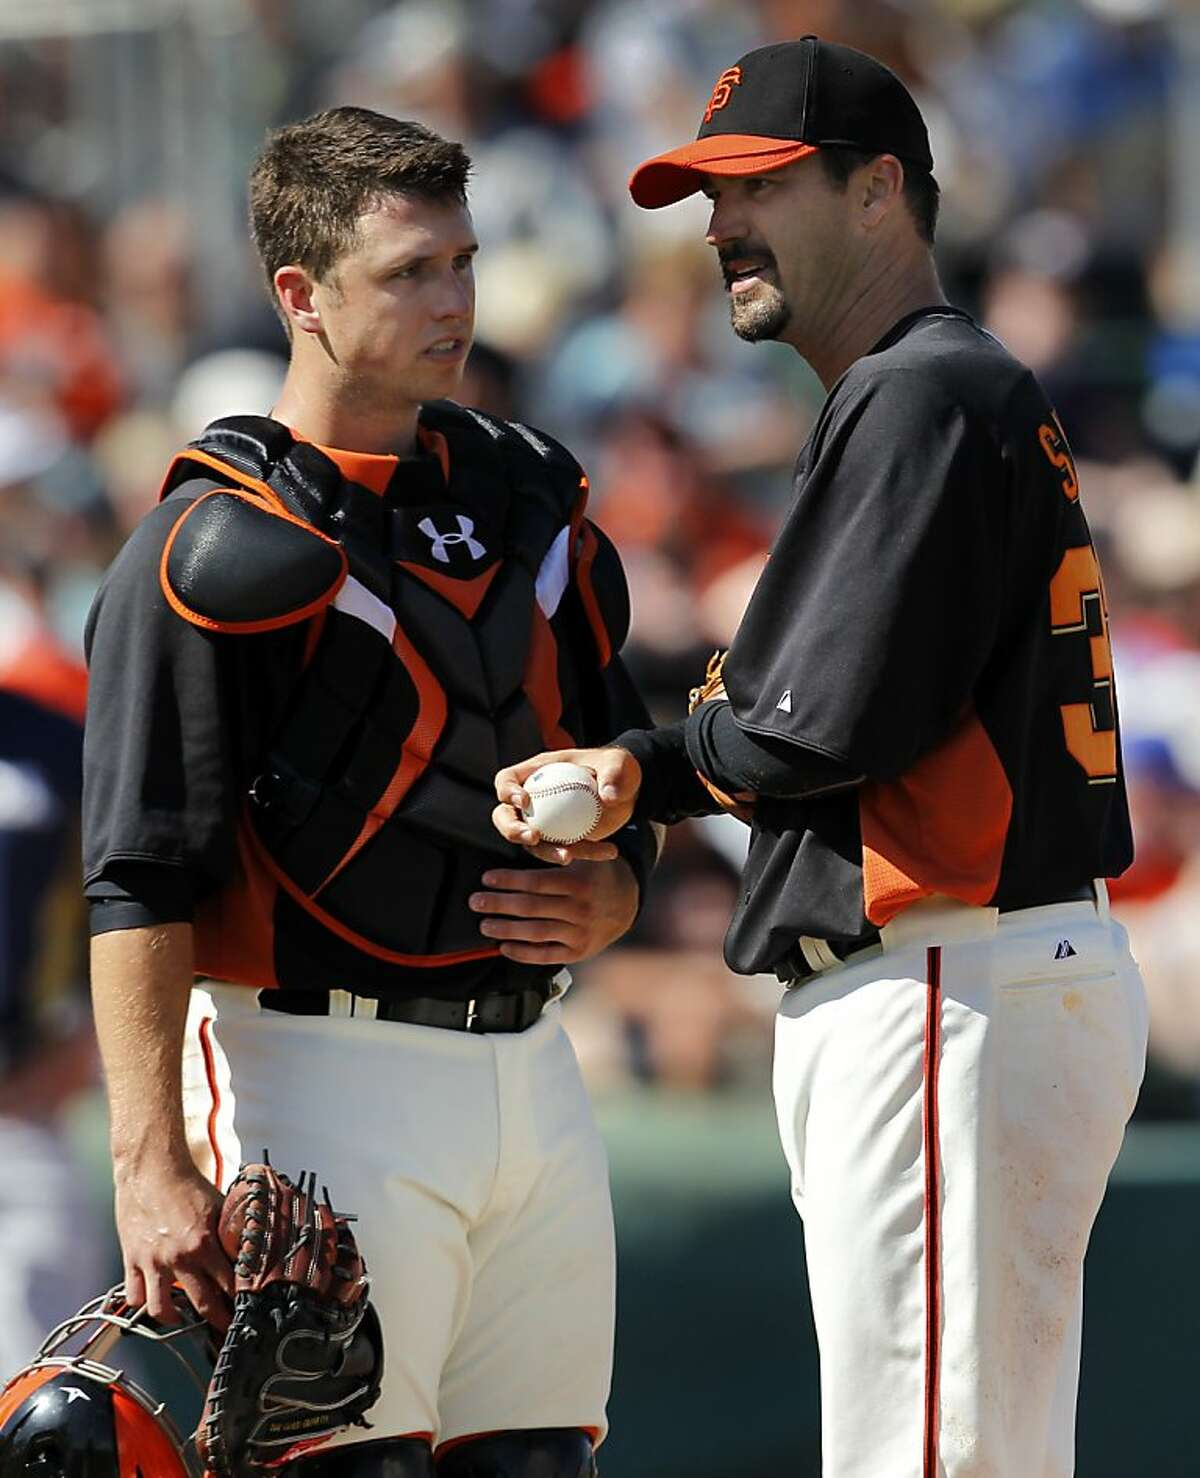 Buster Posey meets on the mound with reliever Jeff Suppan in the Giants' spring training game against the Milwaukee Brewers at Scottsdale Stadium in Scottsdale, Ariz., on Monday.